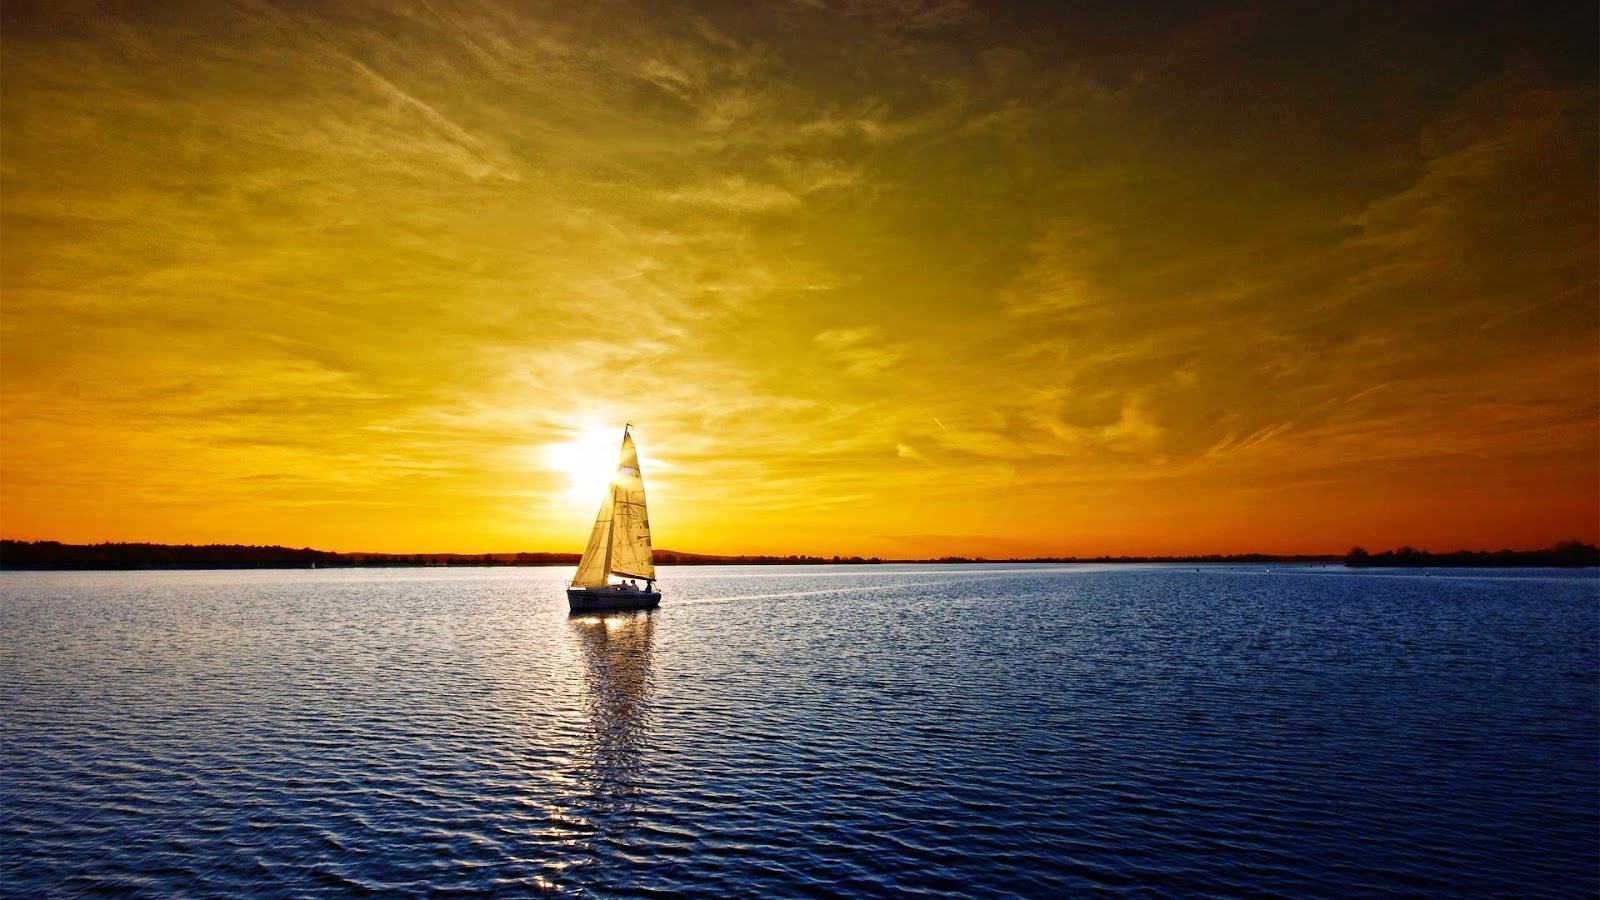 Amazing Sunset Sailboat